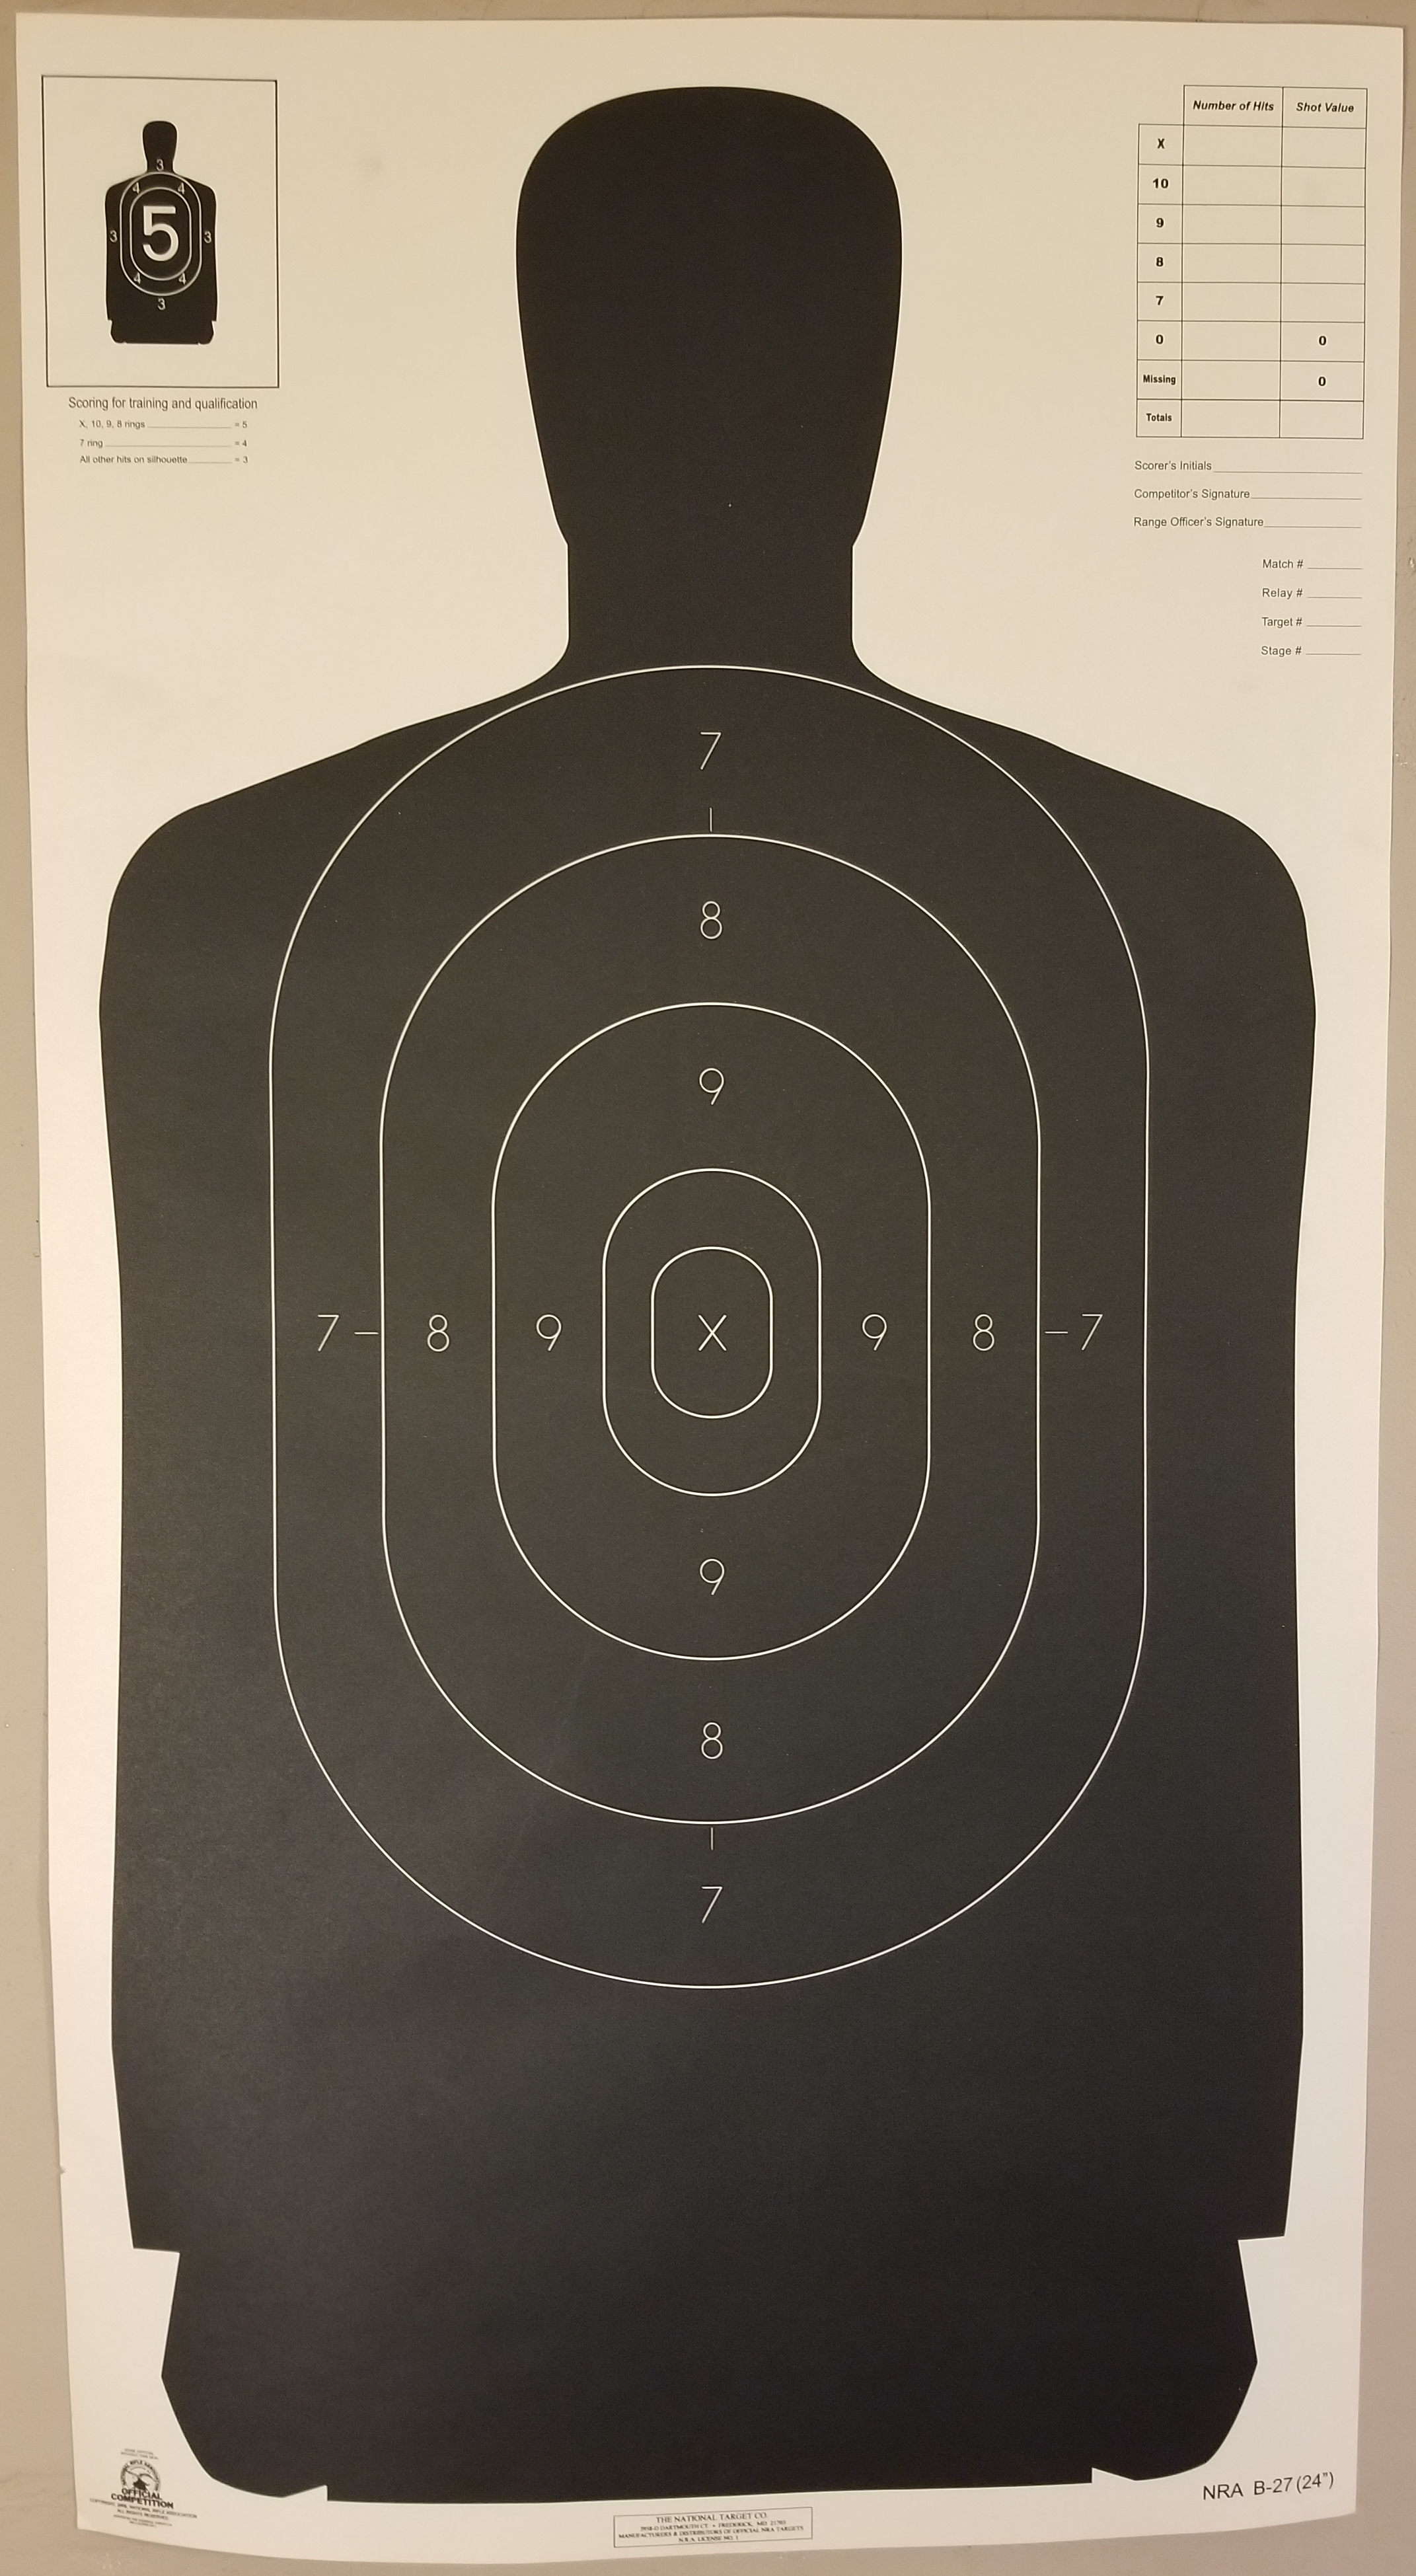 It's just a photo of Gargantuan Nra Silhouette Targets Printable